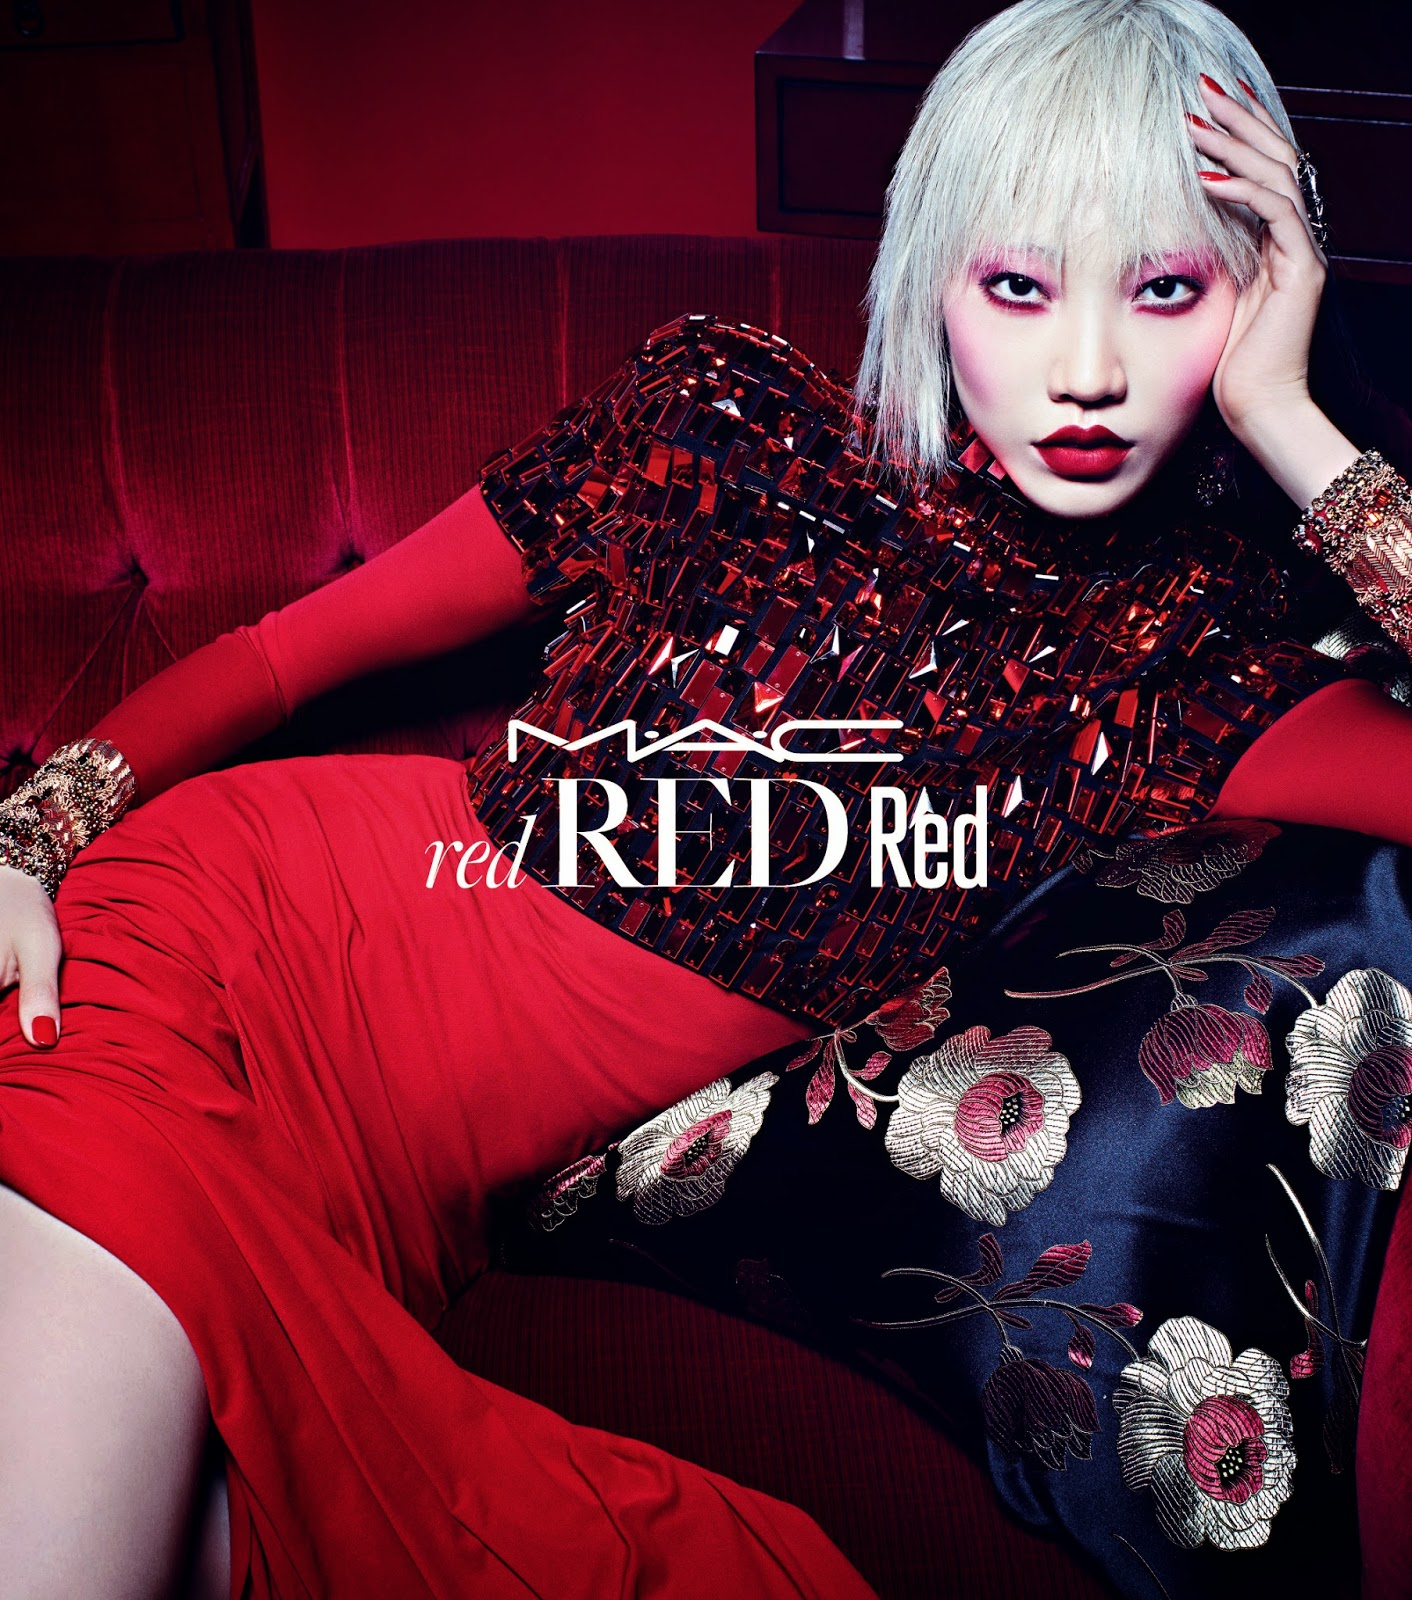 RED,RED,RED!!!